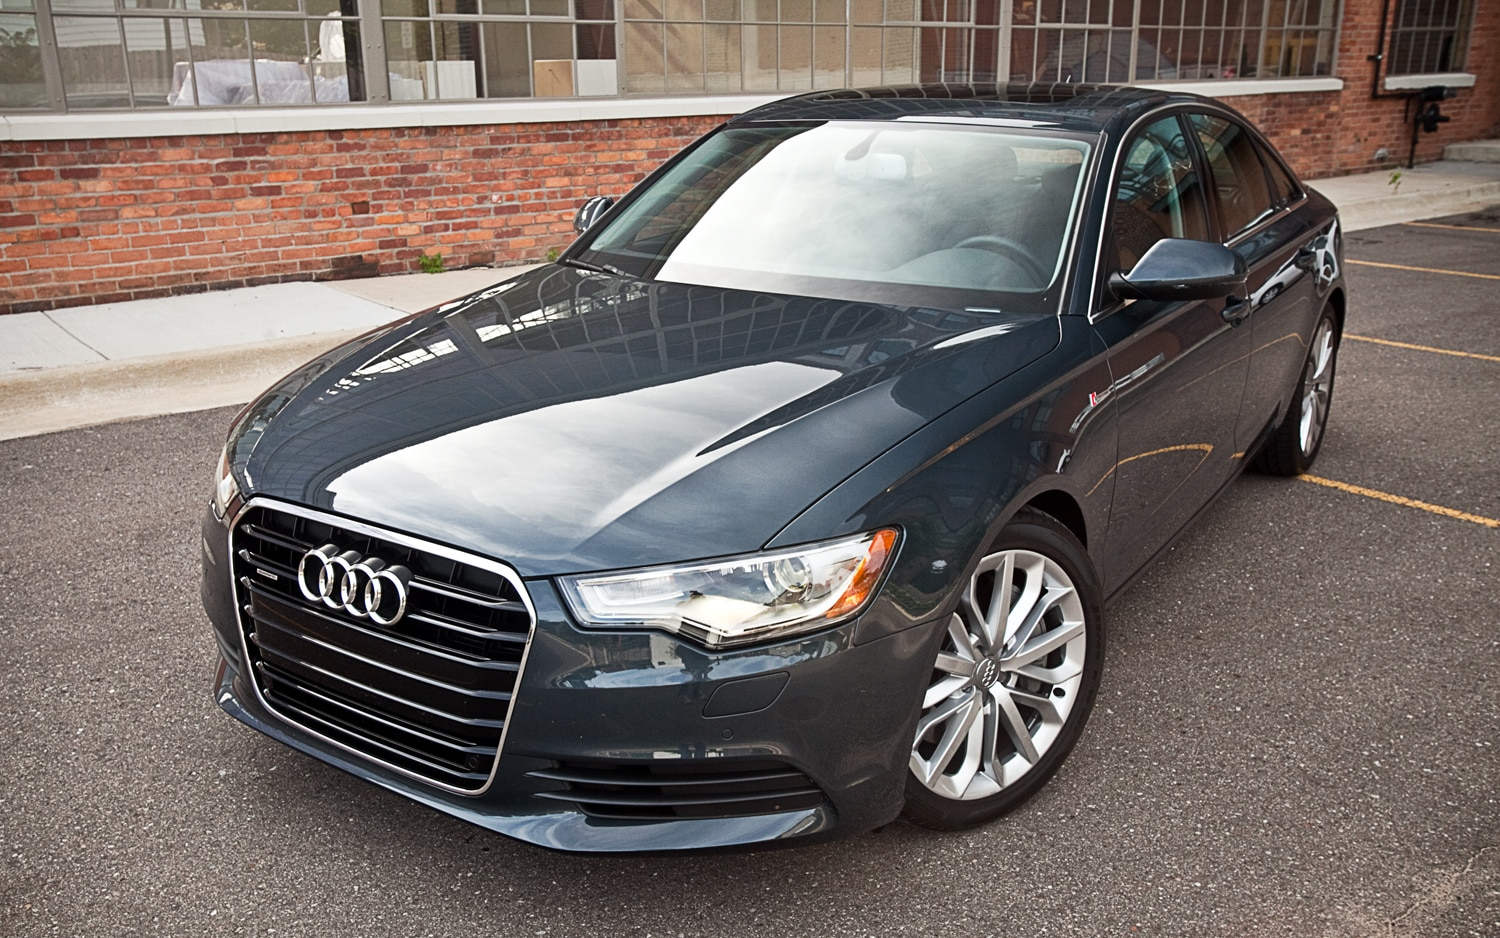 2012 Audi A6 Front Left Side View2